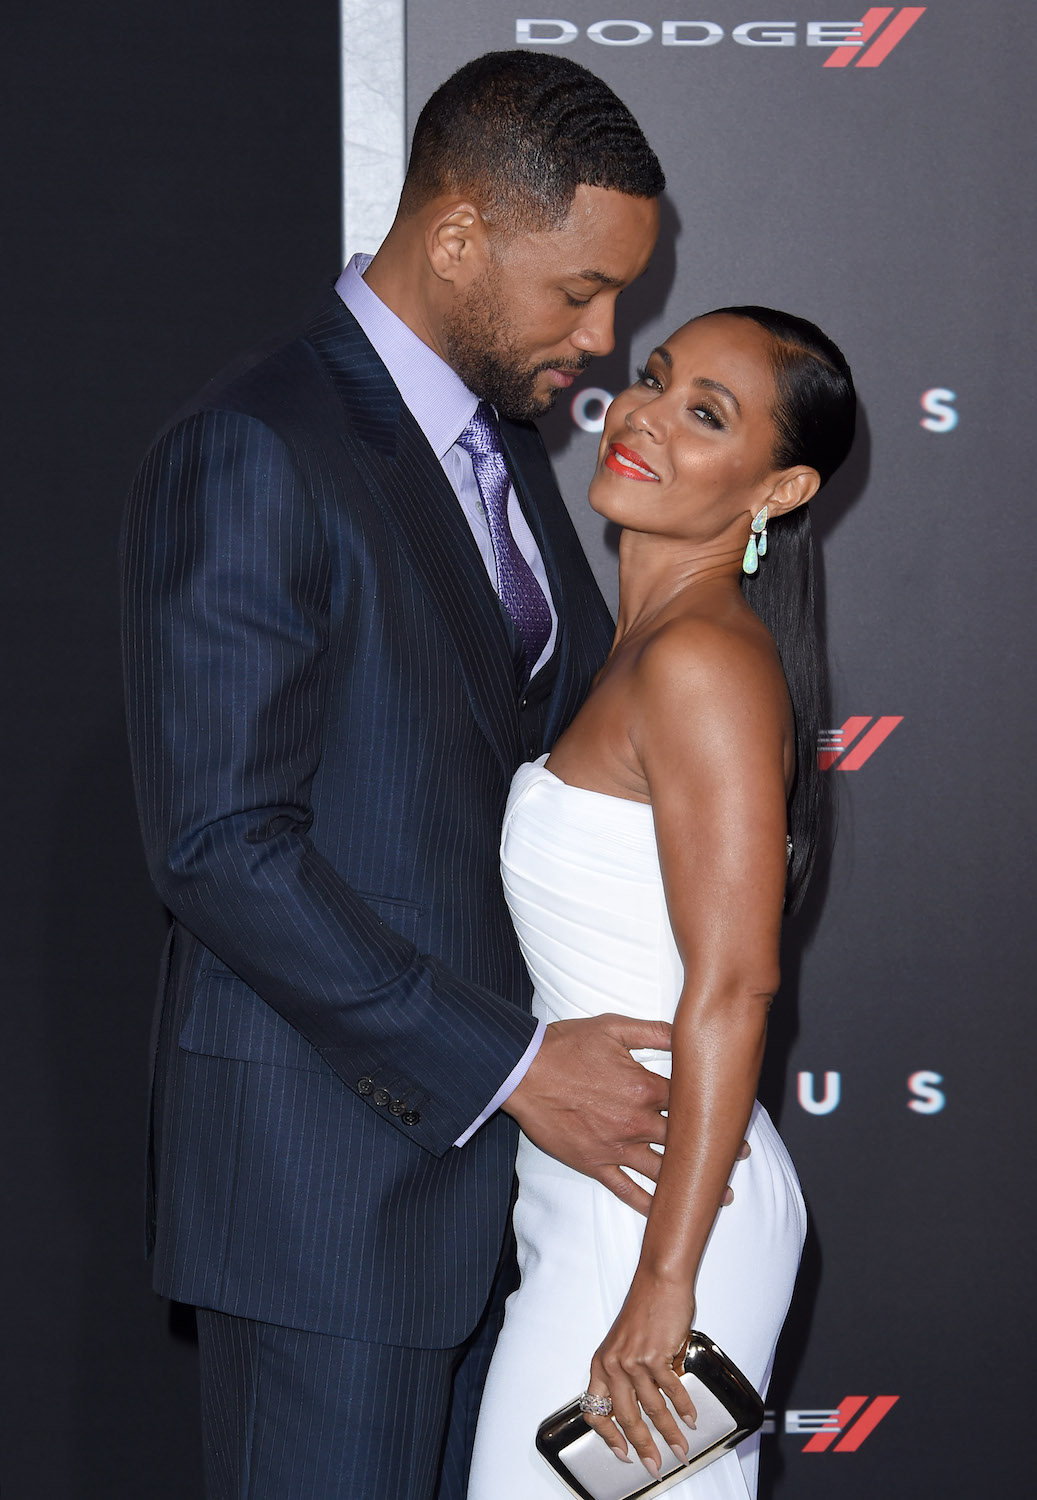 HOLLYWOOD, CA - FEBRUARY 24: Actors Will Smith and Jada Pinkett Smith arrive at the Los Angeles World Premiere of Warner Bros. Pictures 'Focus' at TCL Chinese Theatre on February 24, 2015 in Hollywood, California. (Photo by Axelle/Bauer-Griffin/FilmMagic)